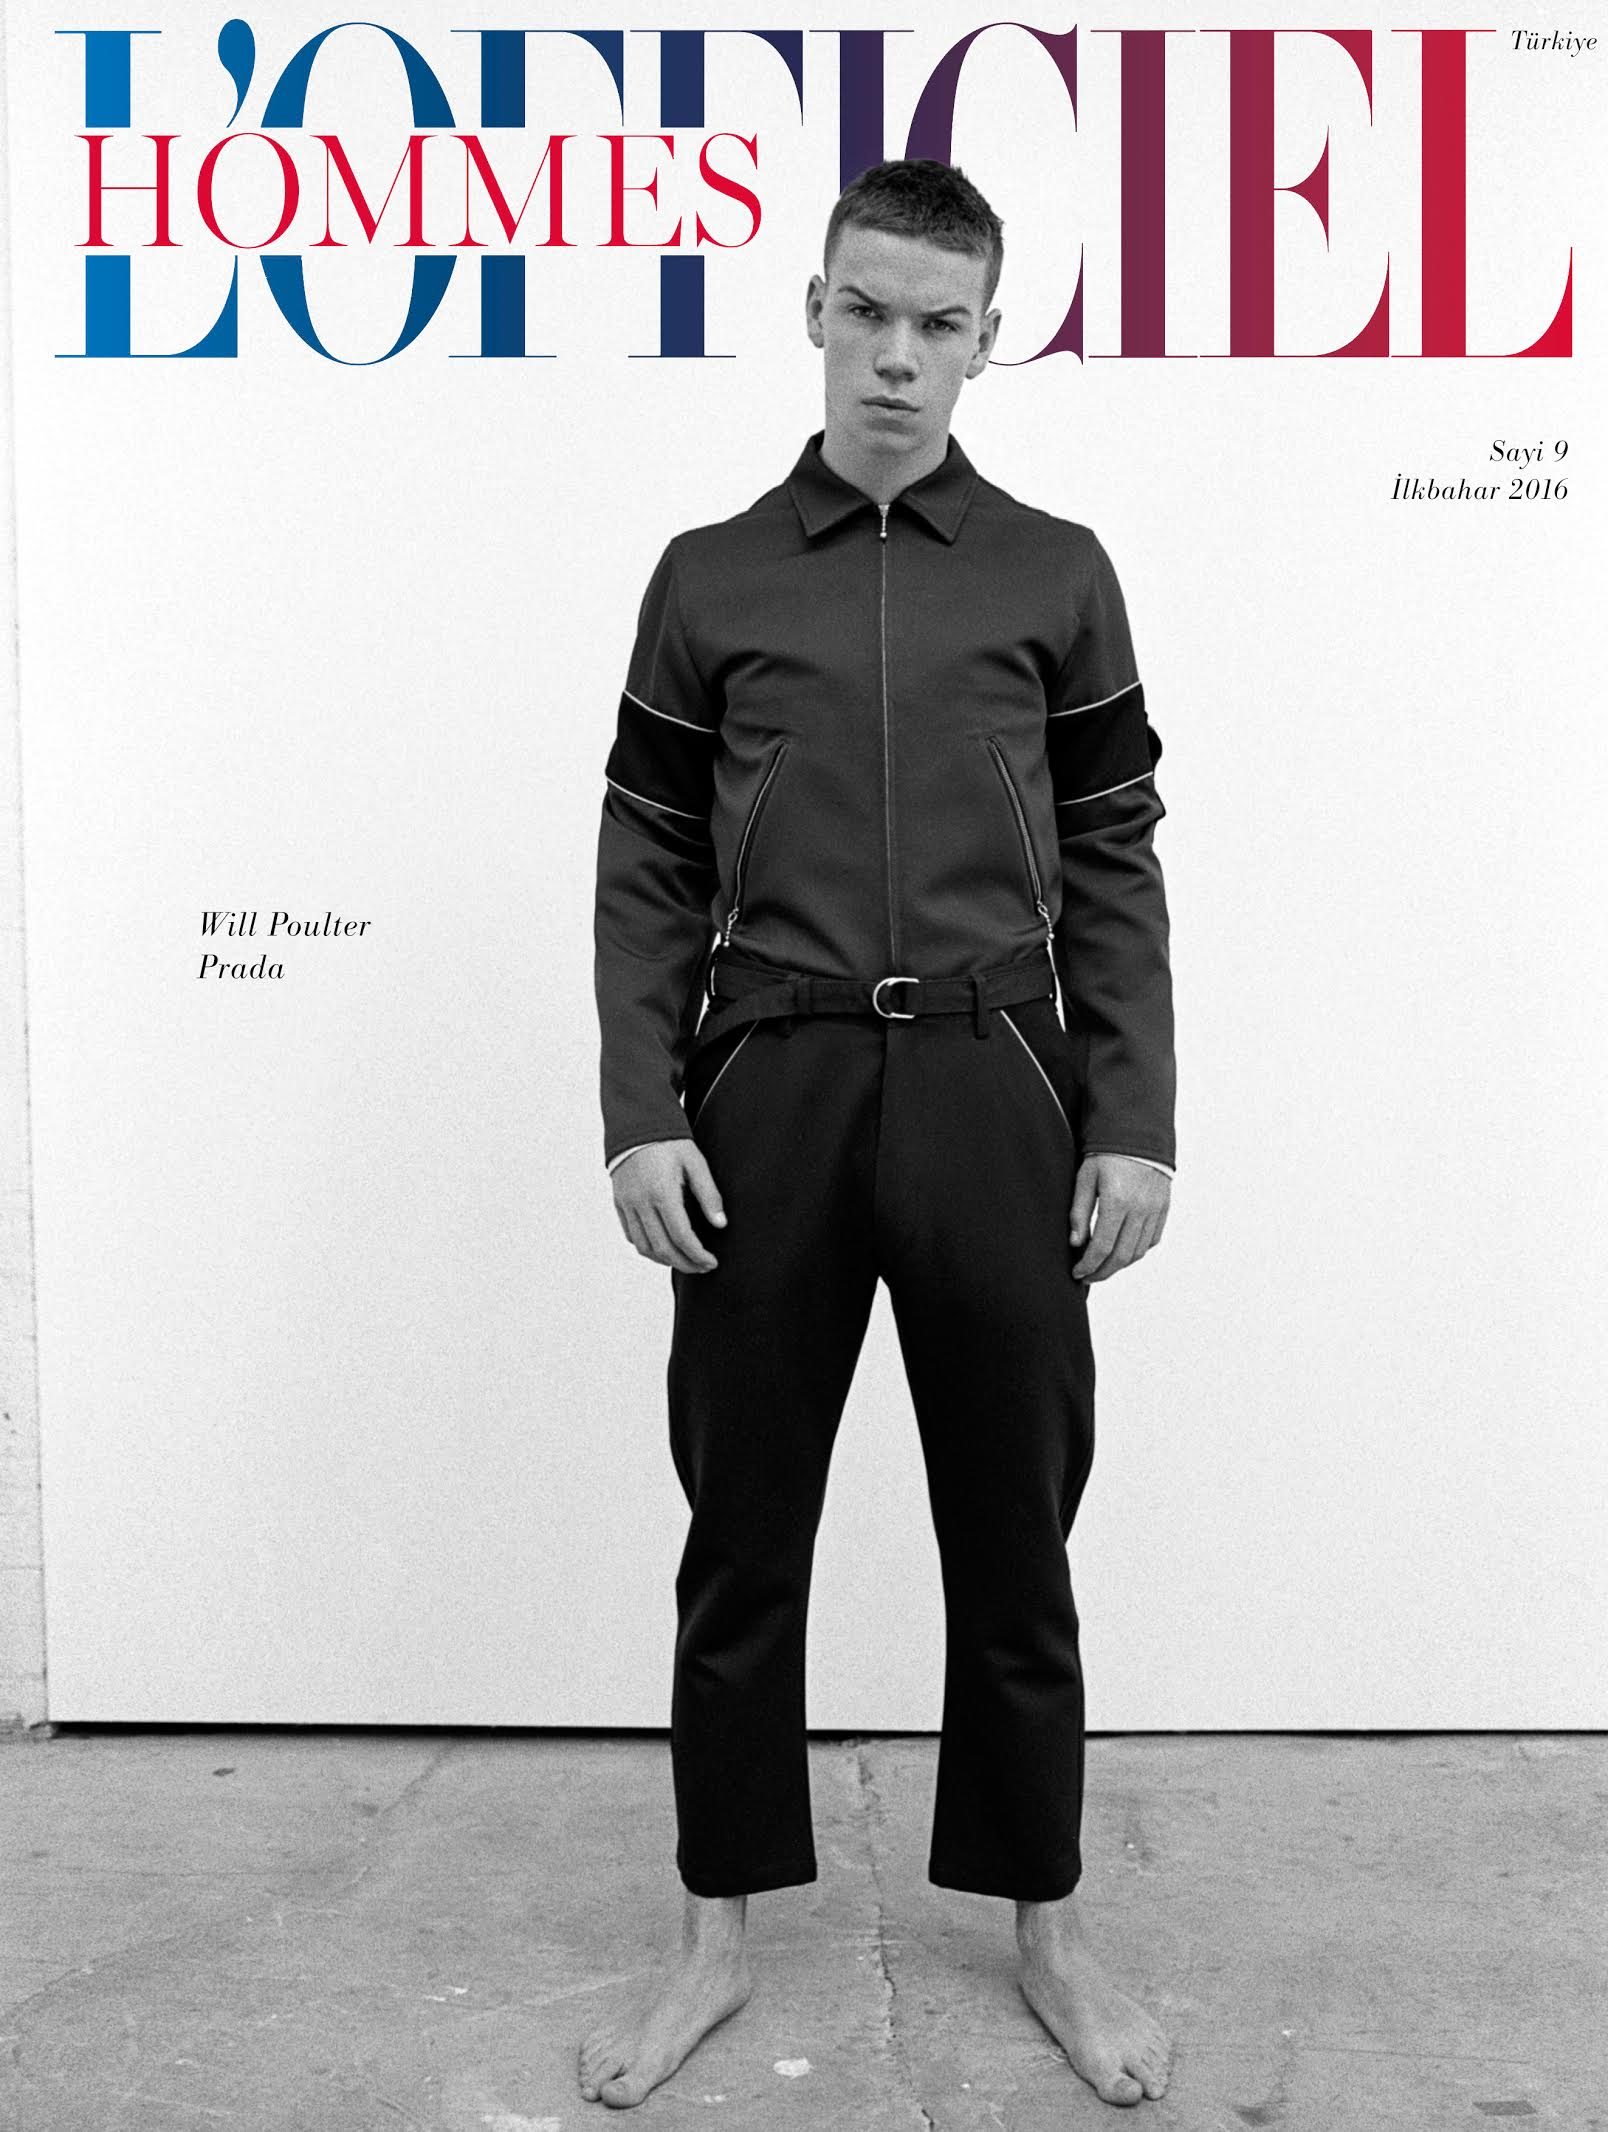 Will Poulter Goes Sporty for L'Officiel Hommes Turkey Cover Shoot